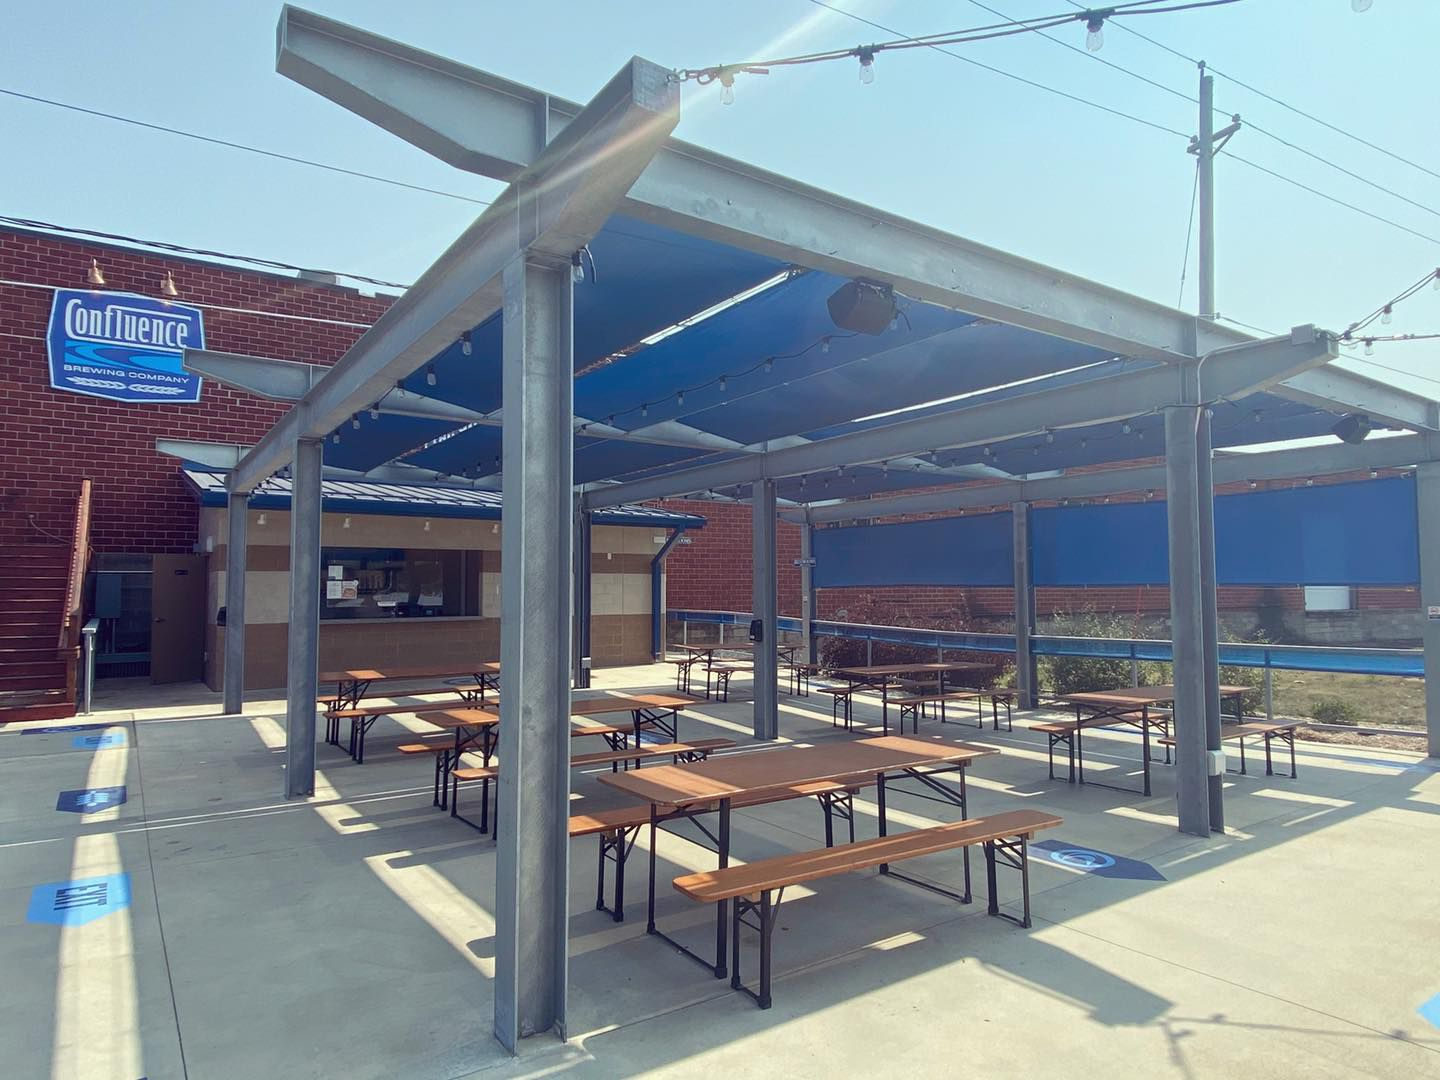 The patio at Confluence Brewing Company in Des Moines. Photo courtesy of Confluence.